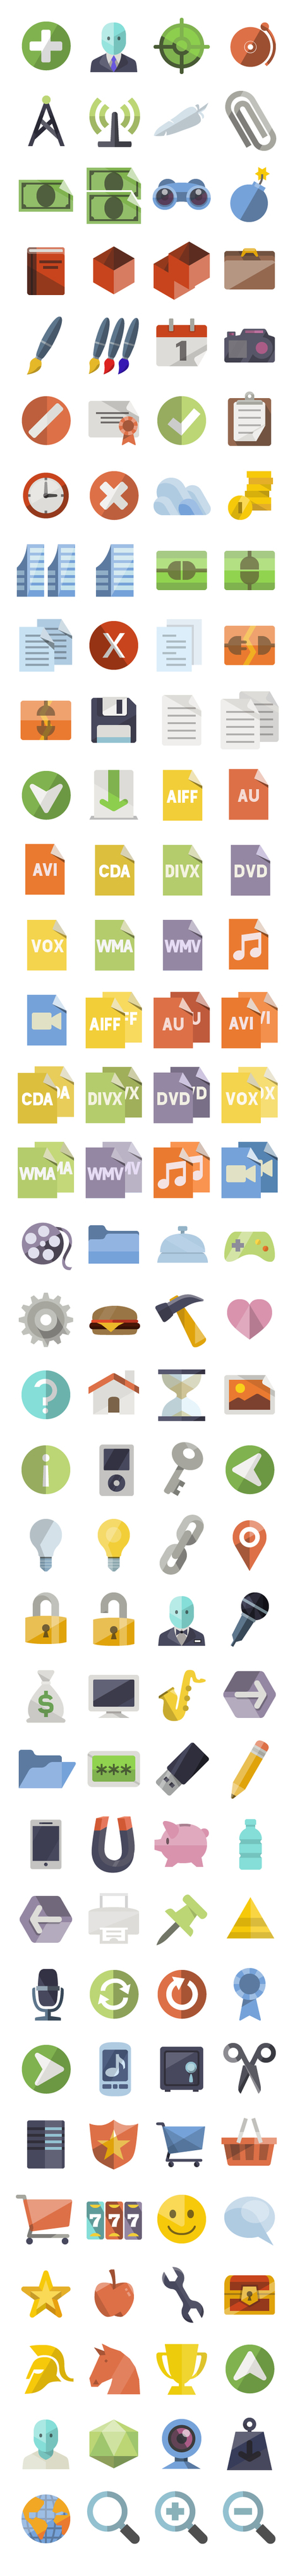 Flat icons | Mes ressources personnelles | Scoop.it